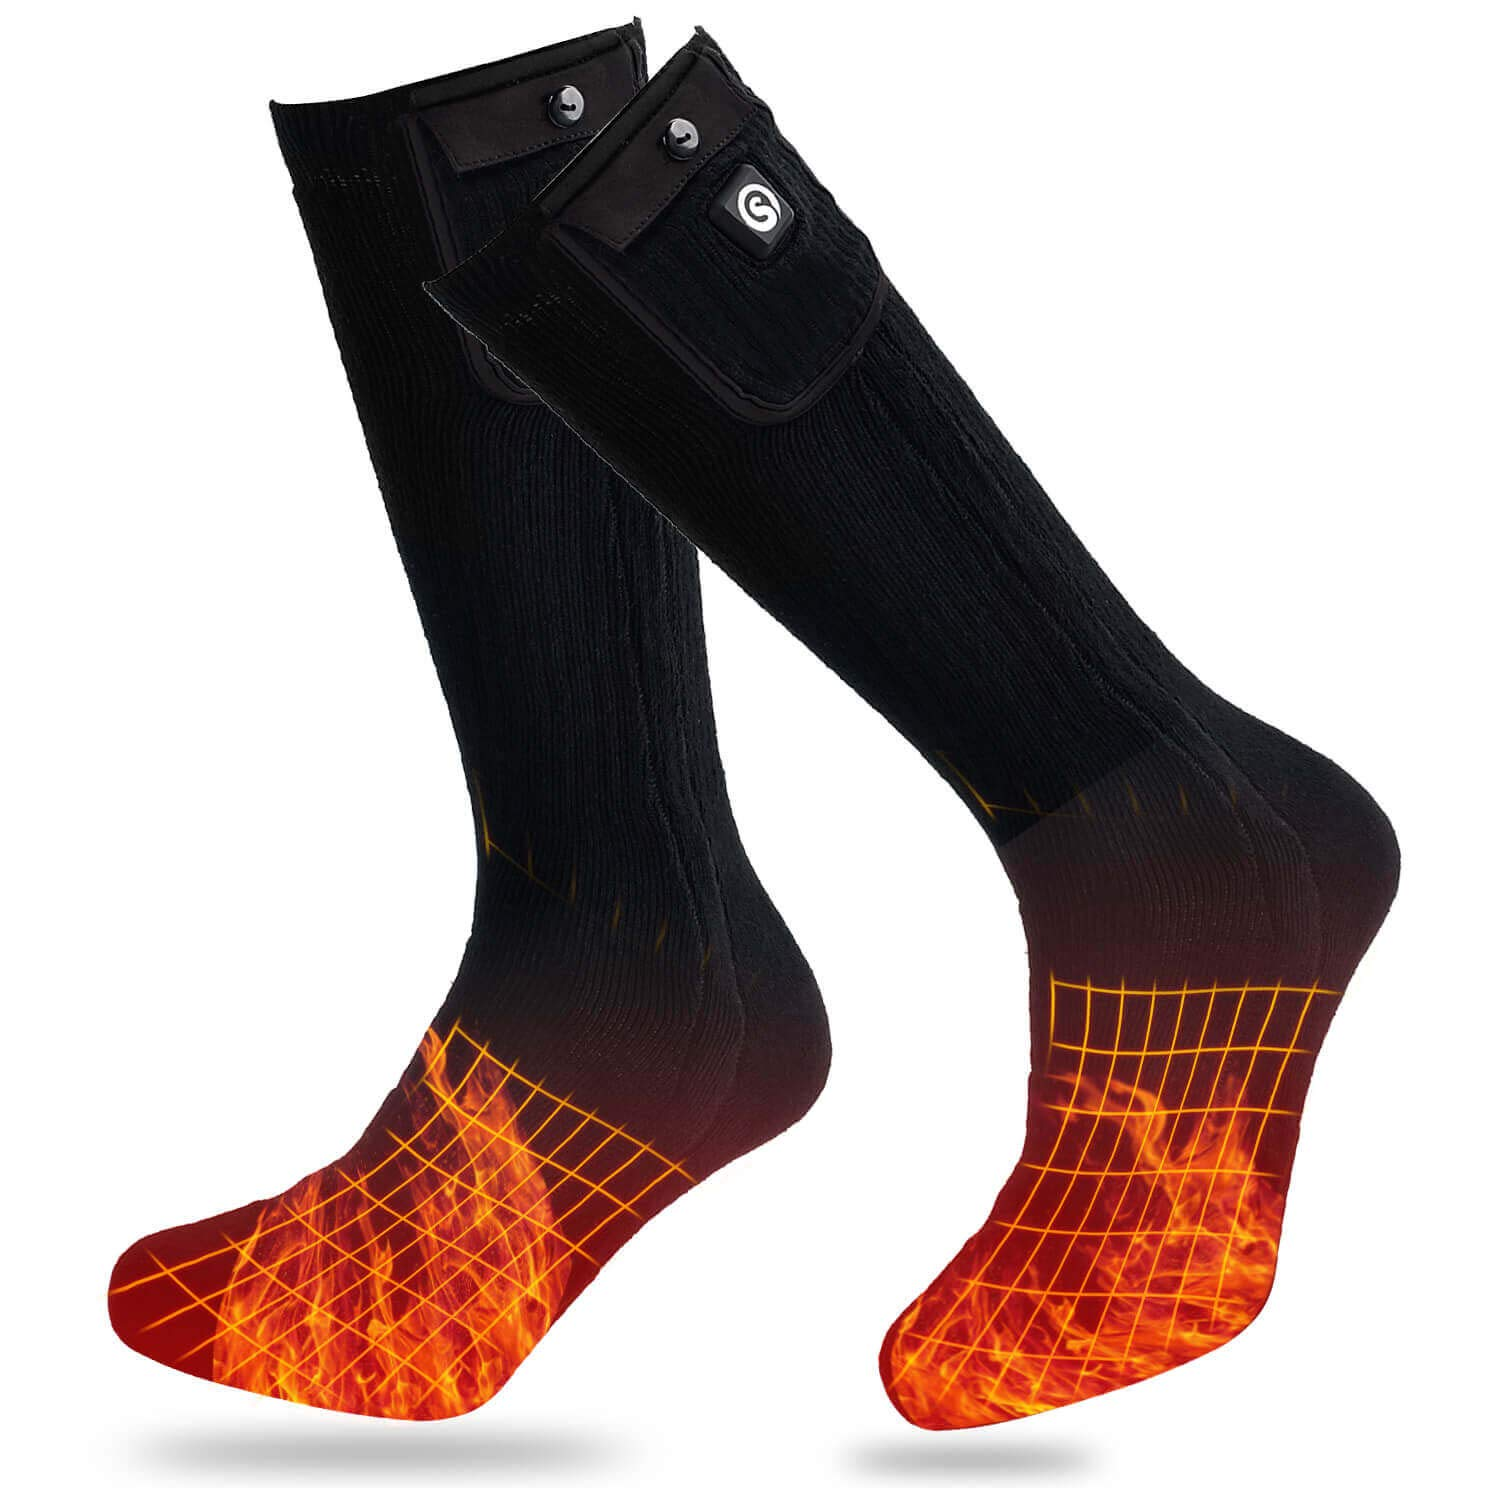 Heated Socks Men Women,7.4V 2204mAh Electric Rechargeable Battery Heated Socks for Winter Sports Motorcycle Riding Snow Skiing Warm Cotton Heating Ski Socks Foot Warmer Battery Operated Powered Socks by BARCHI HEAT